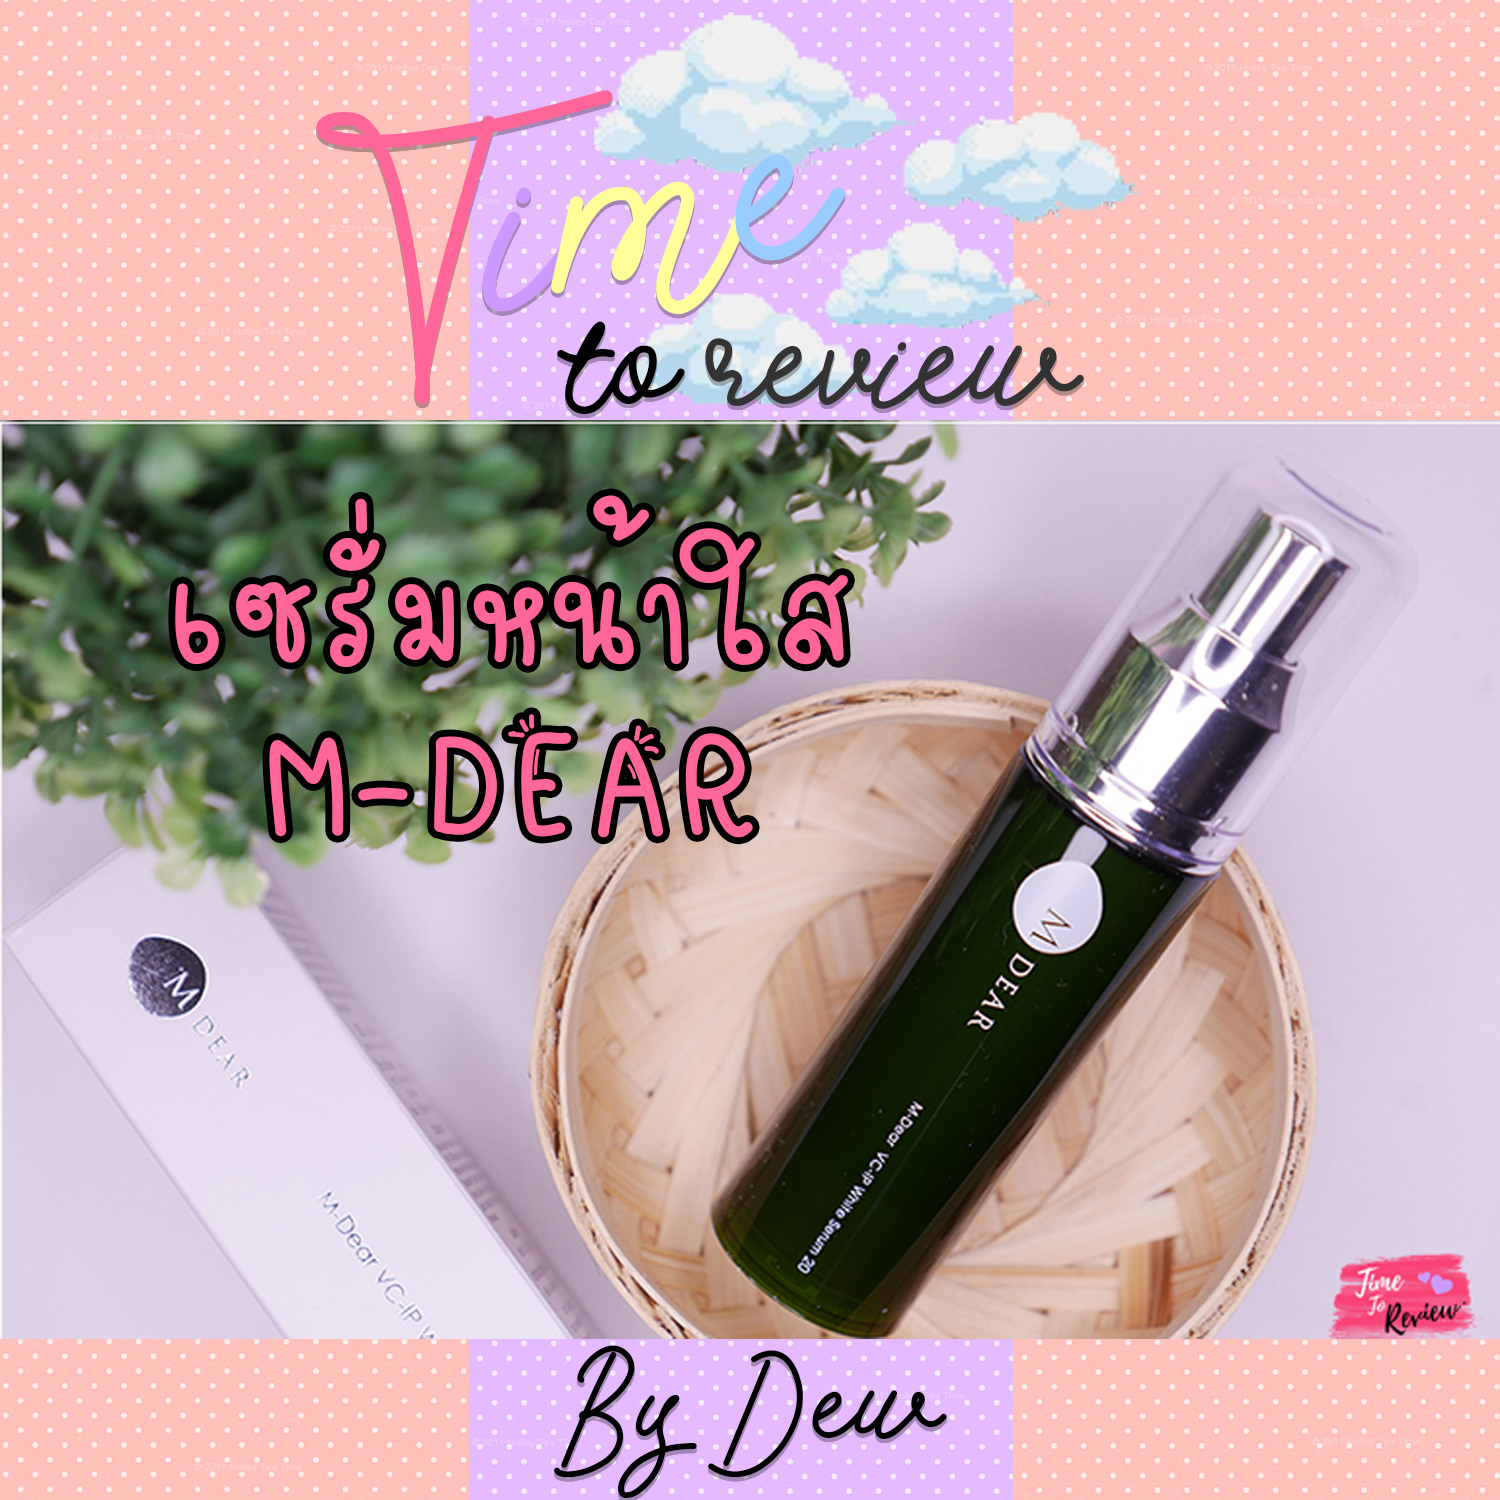 [Review] M-DEAR VC-IP WHITE SERUM 20 เซรั่มหน้าใส